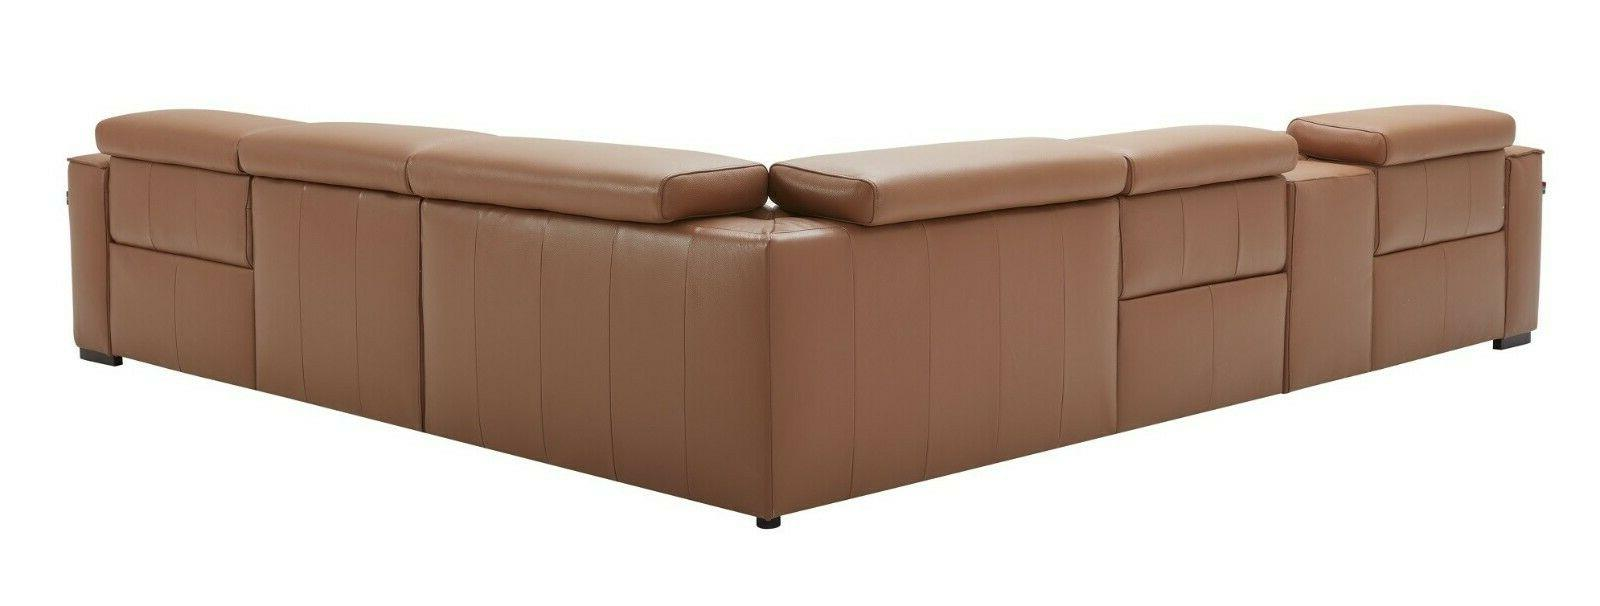 J&M Furniture Picasso Carmel Top Leather Sectional Sofa, 6